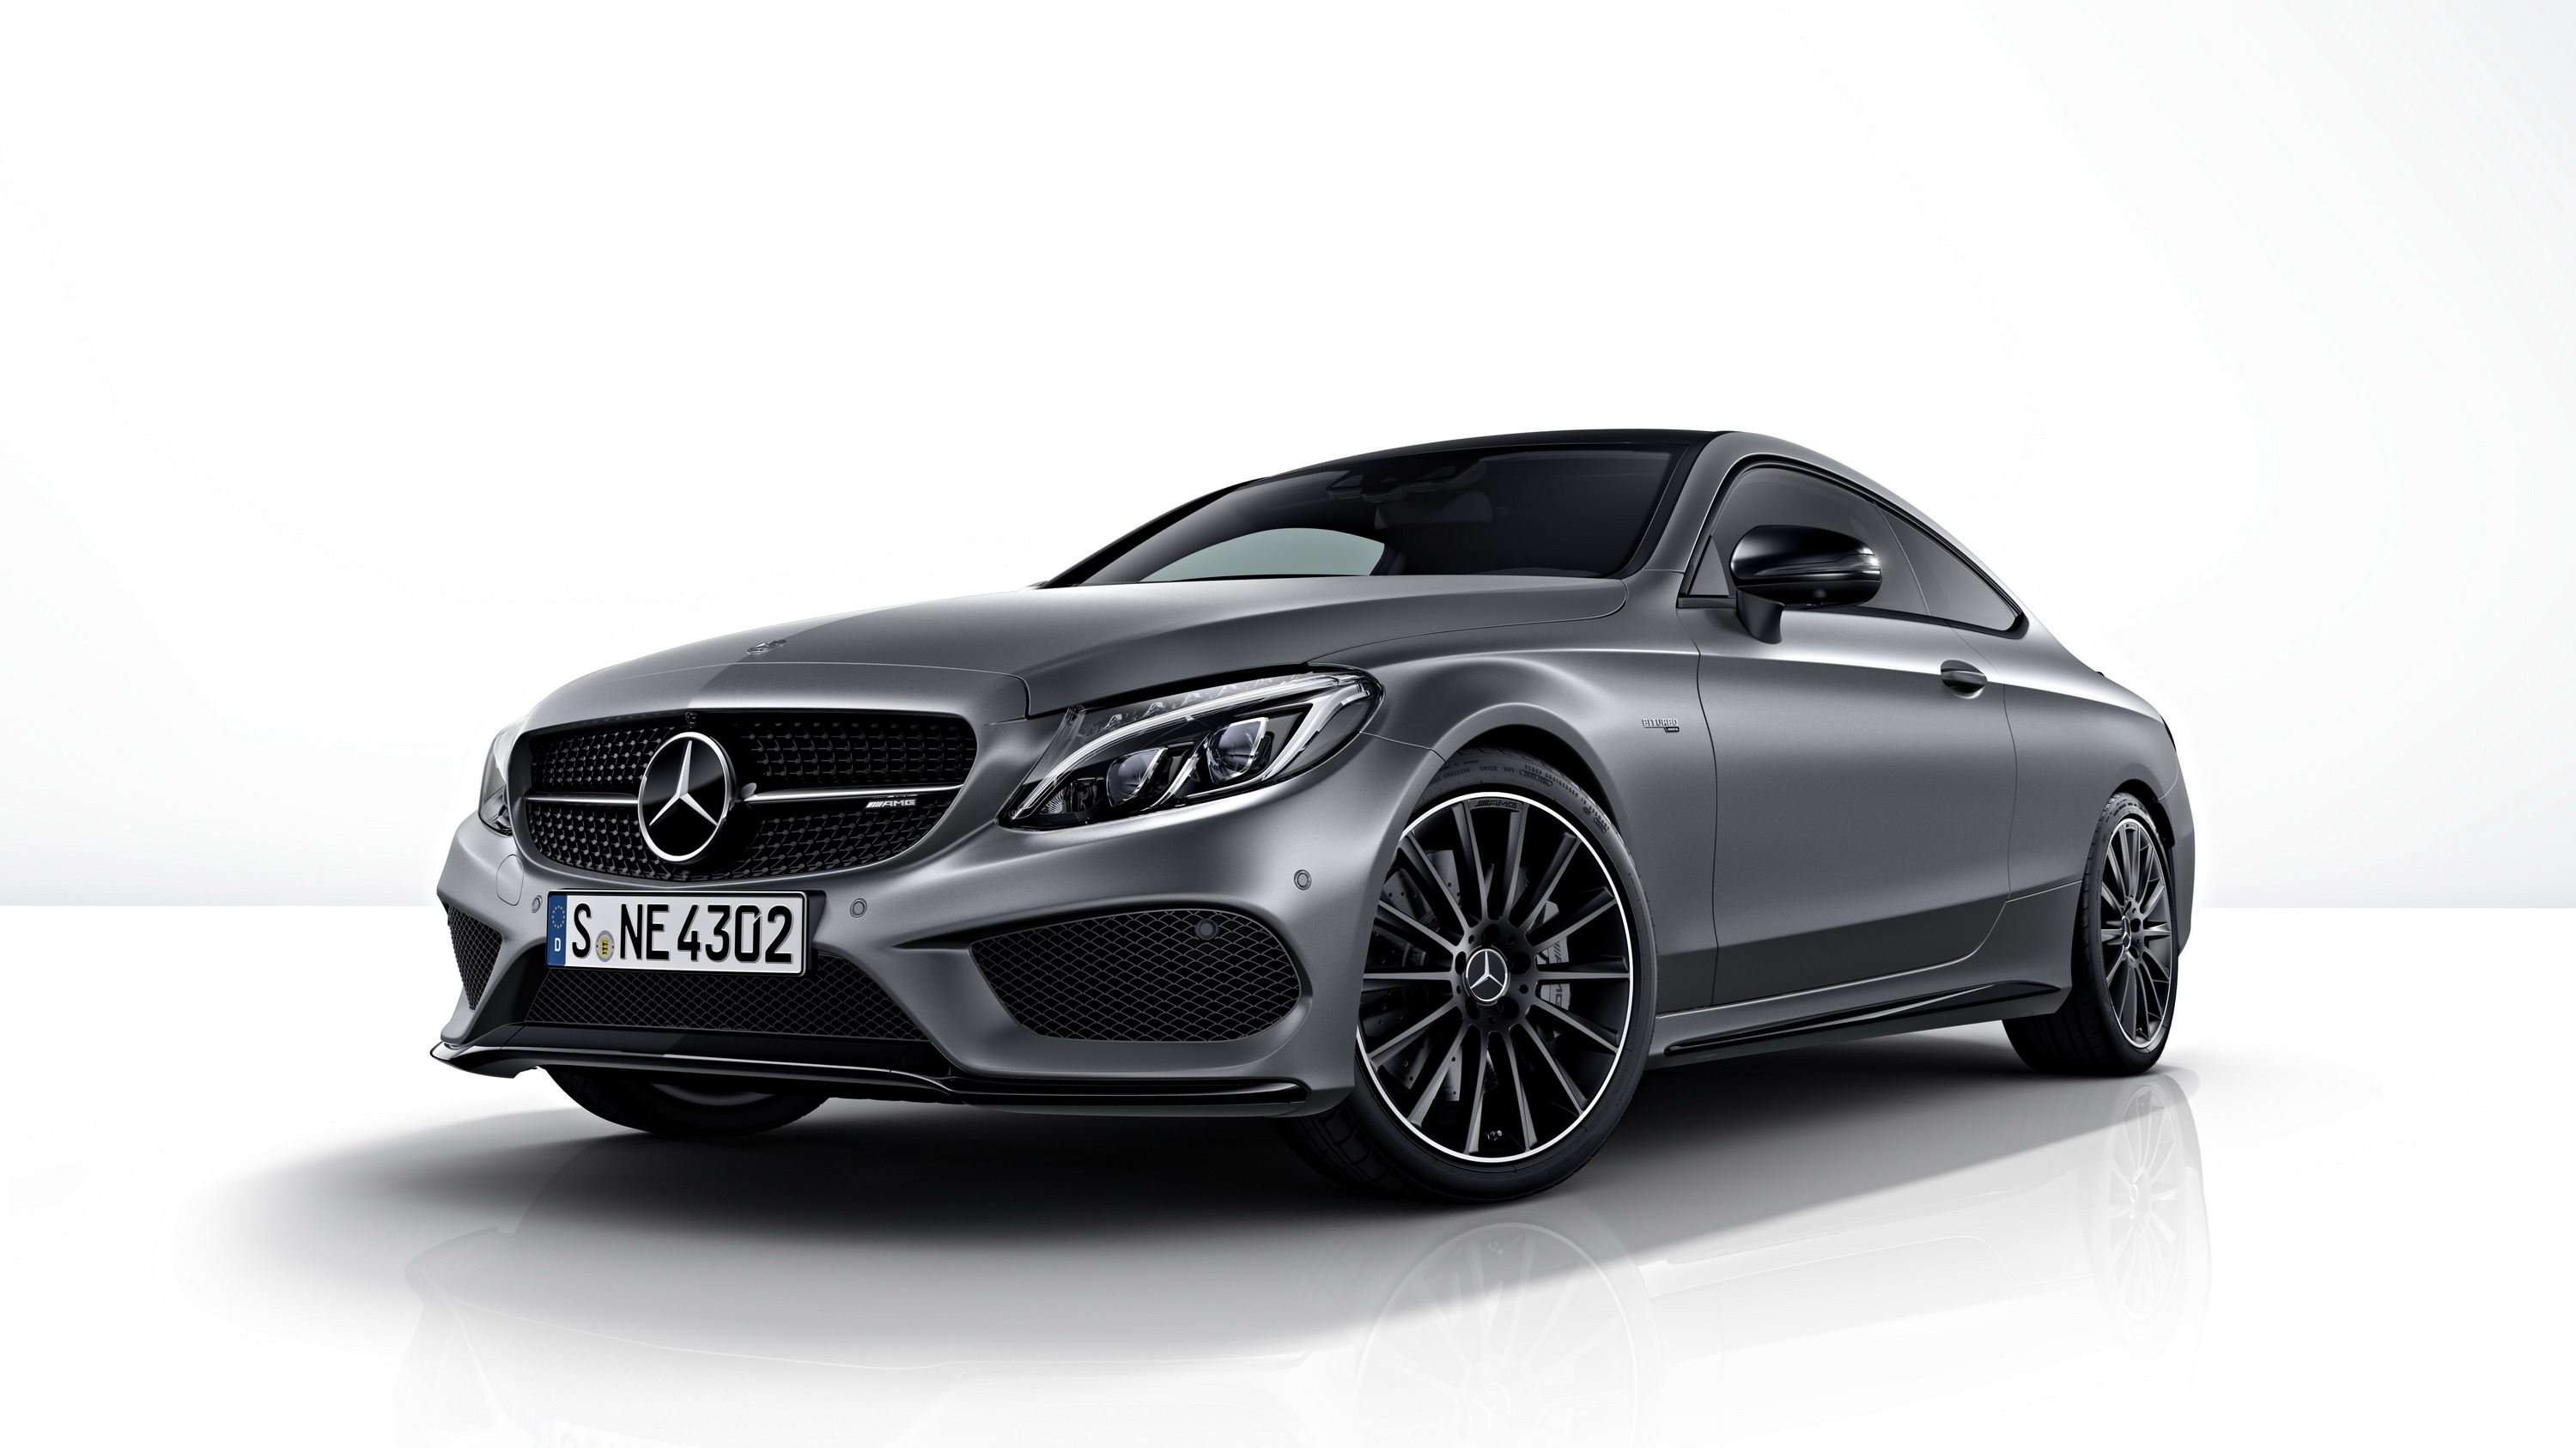 2017 mercedes amg c 43 4matic coup and cabriolet night. Black Bedroom Furniture Sets. Home Design Ideas